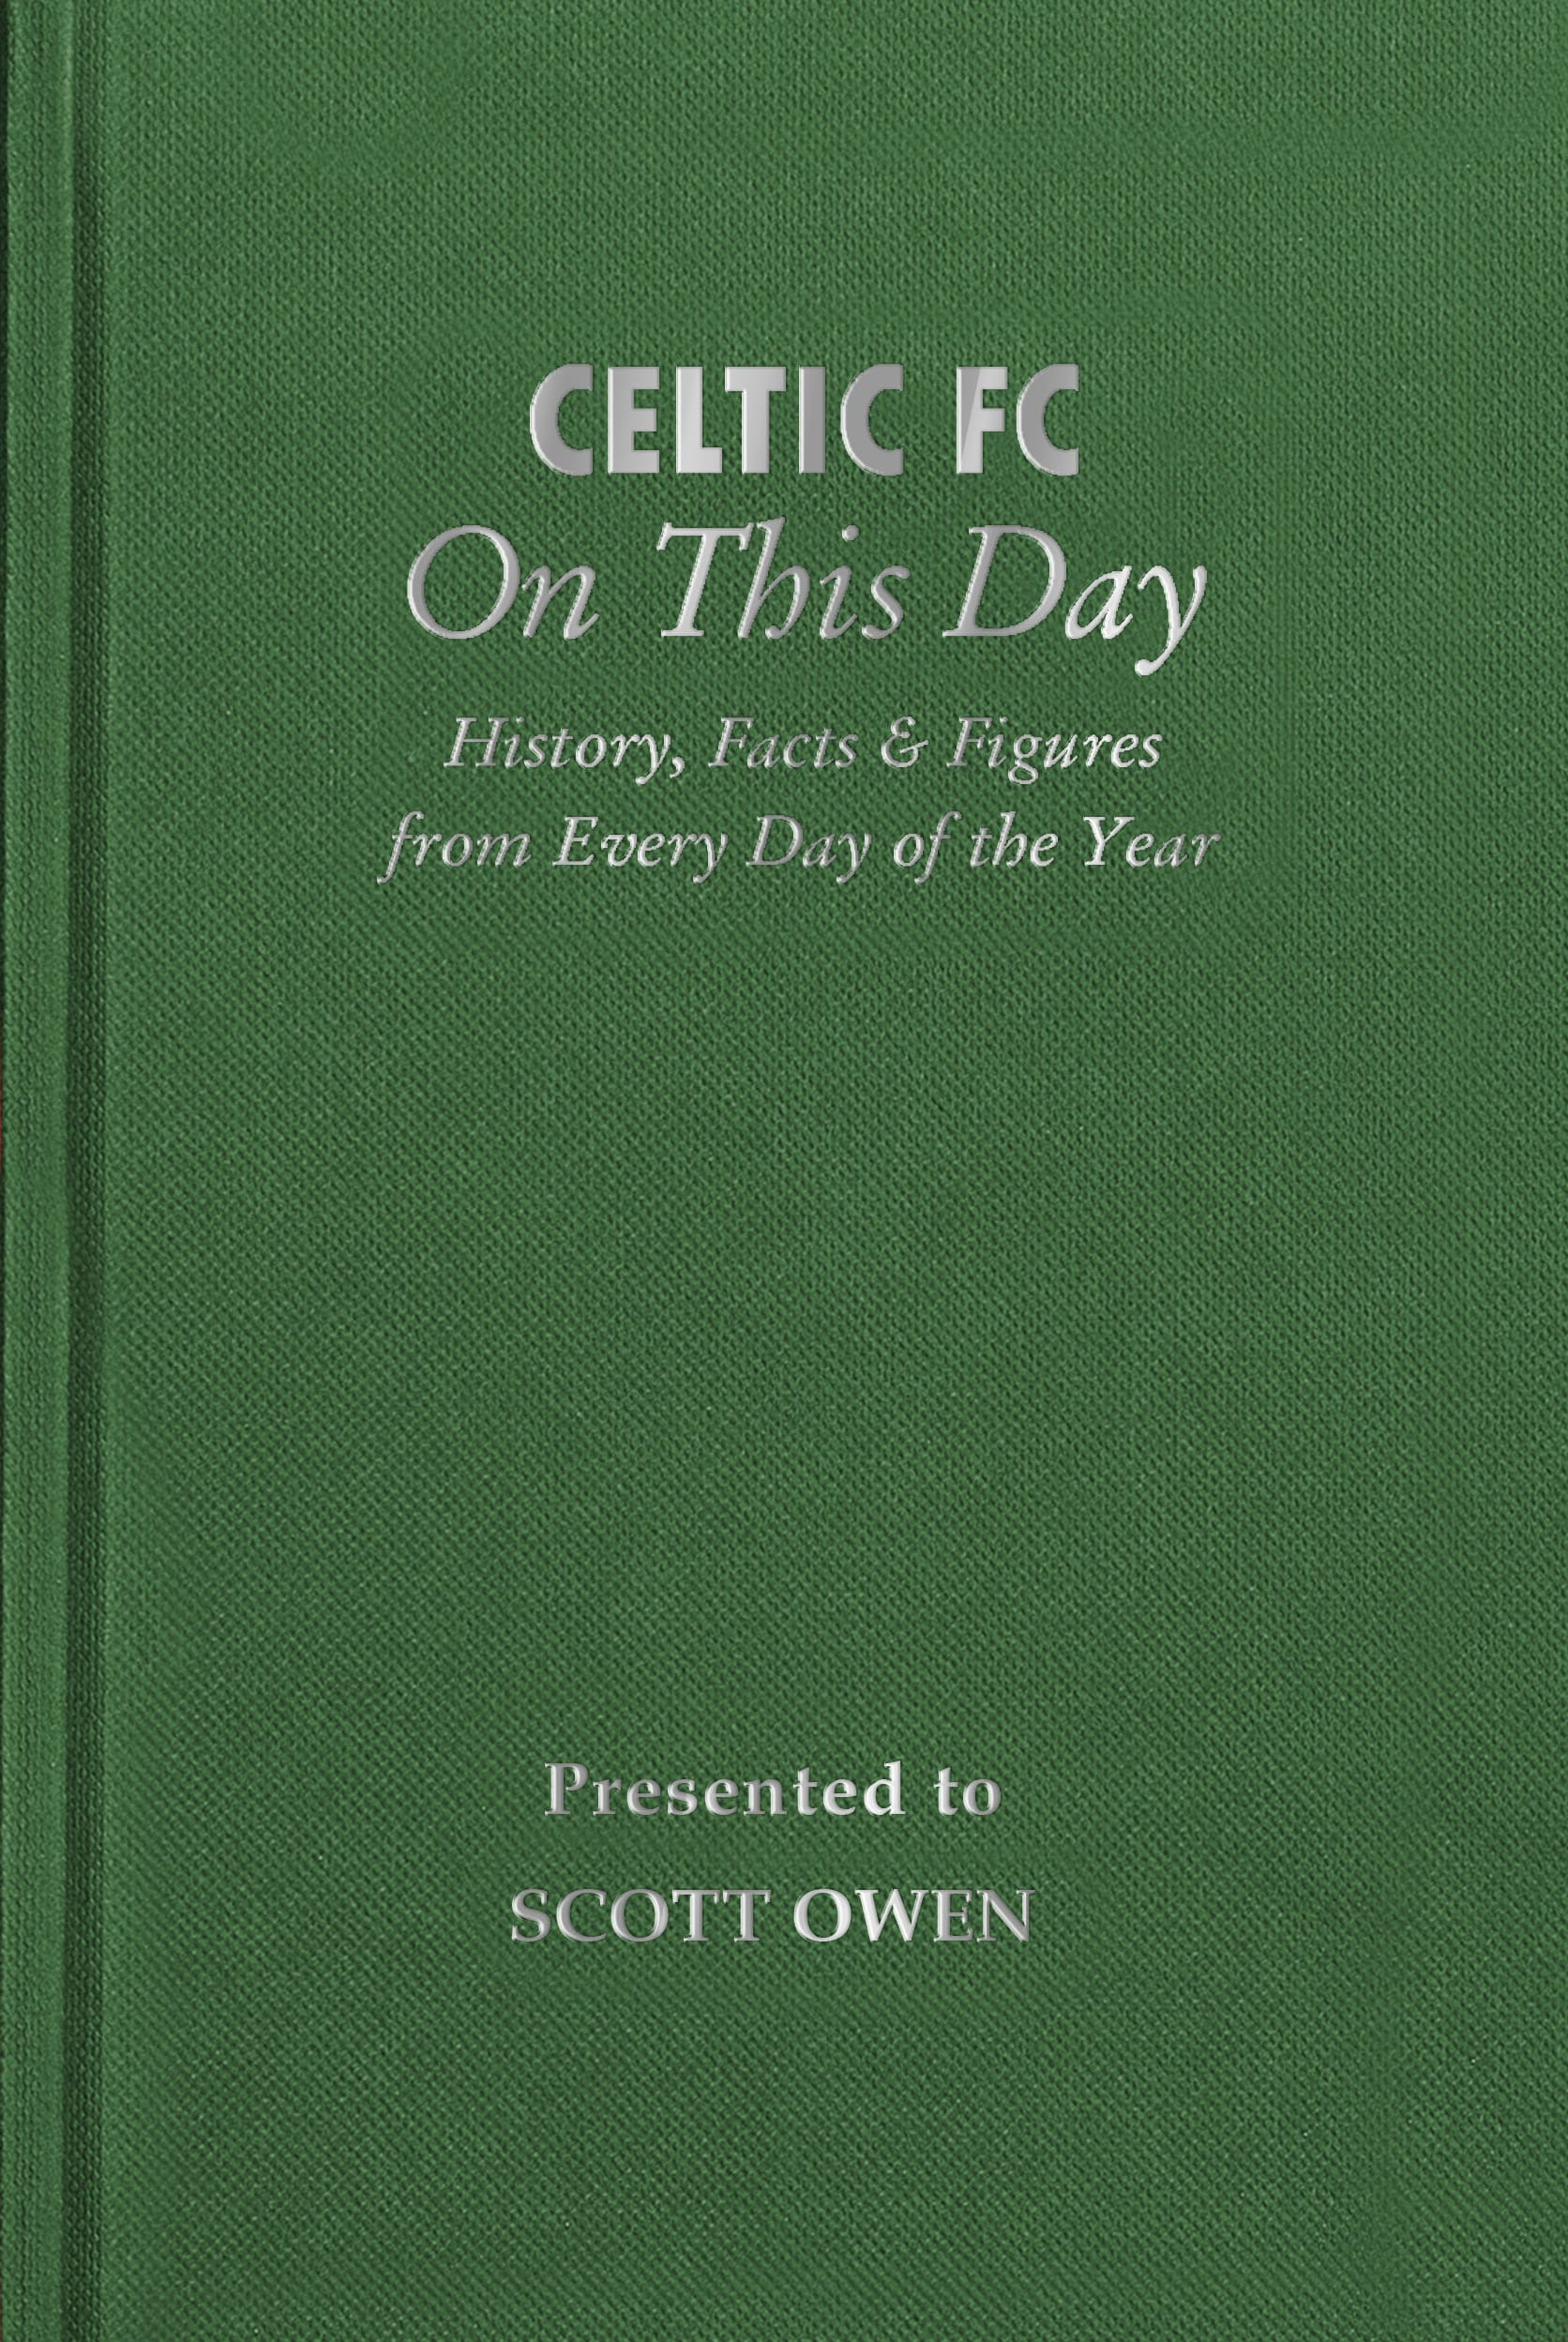 history of celtic book